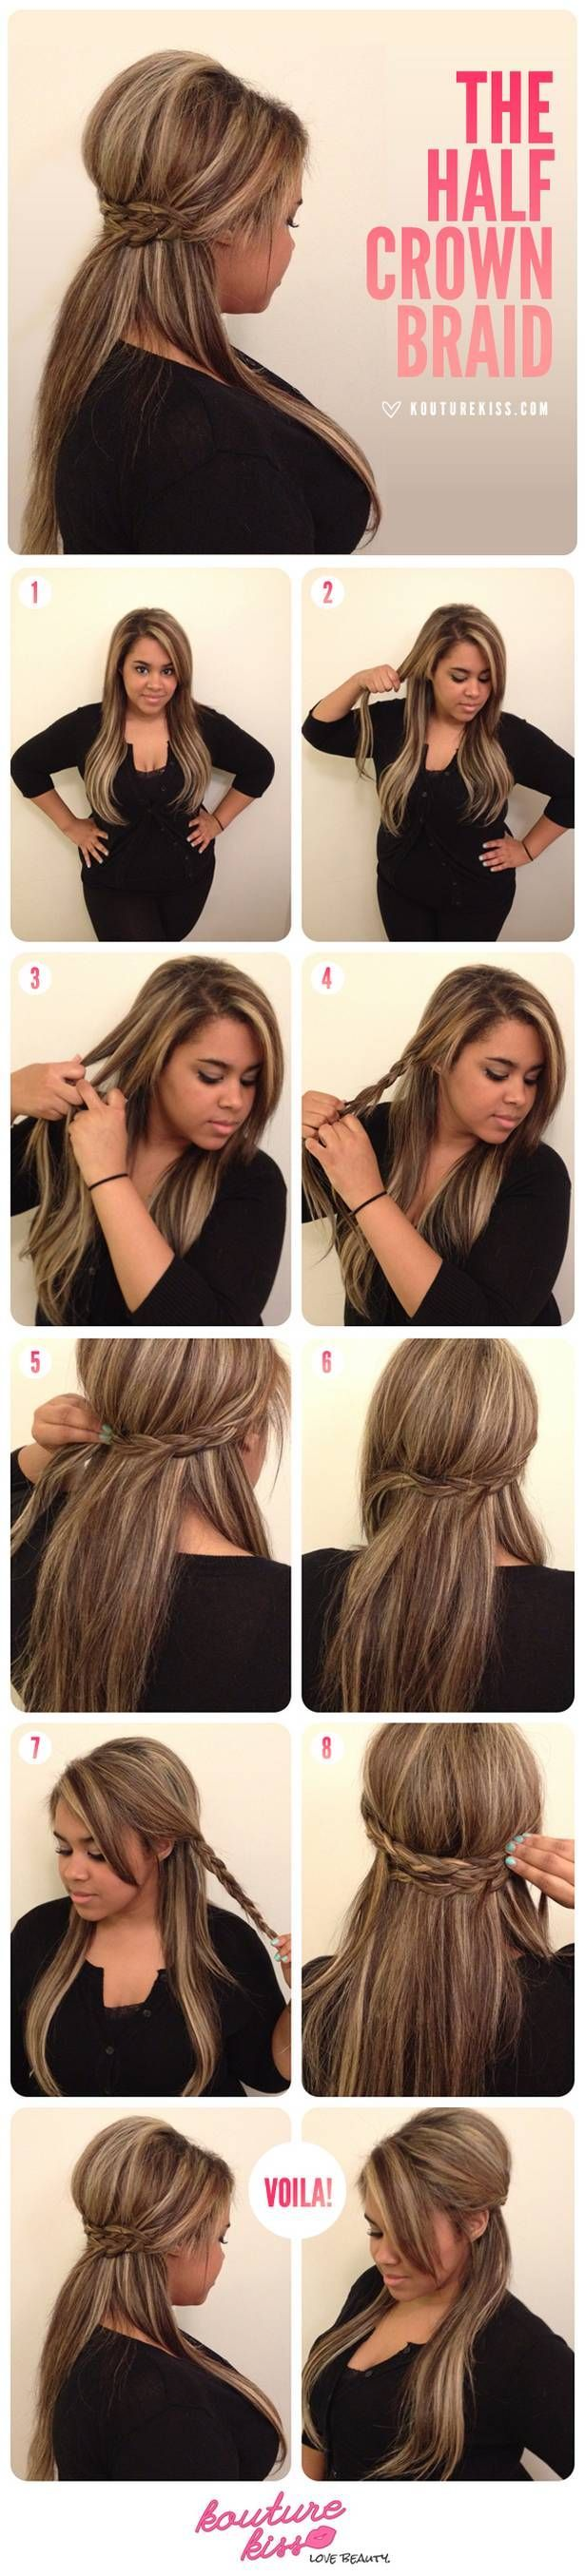 collection of summer hairstyles #prom hairstyles